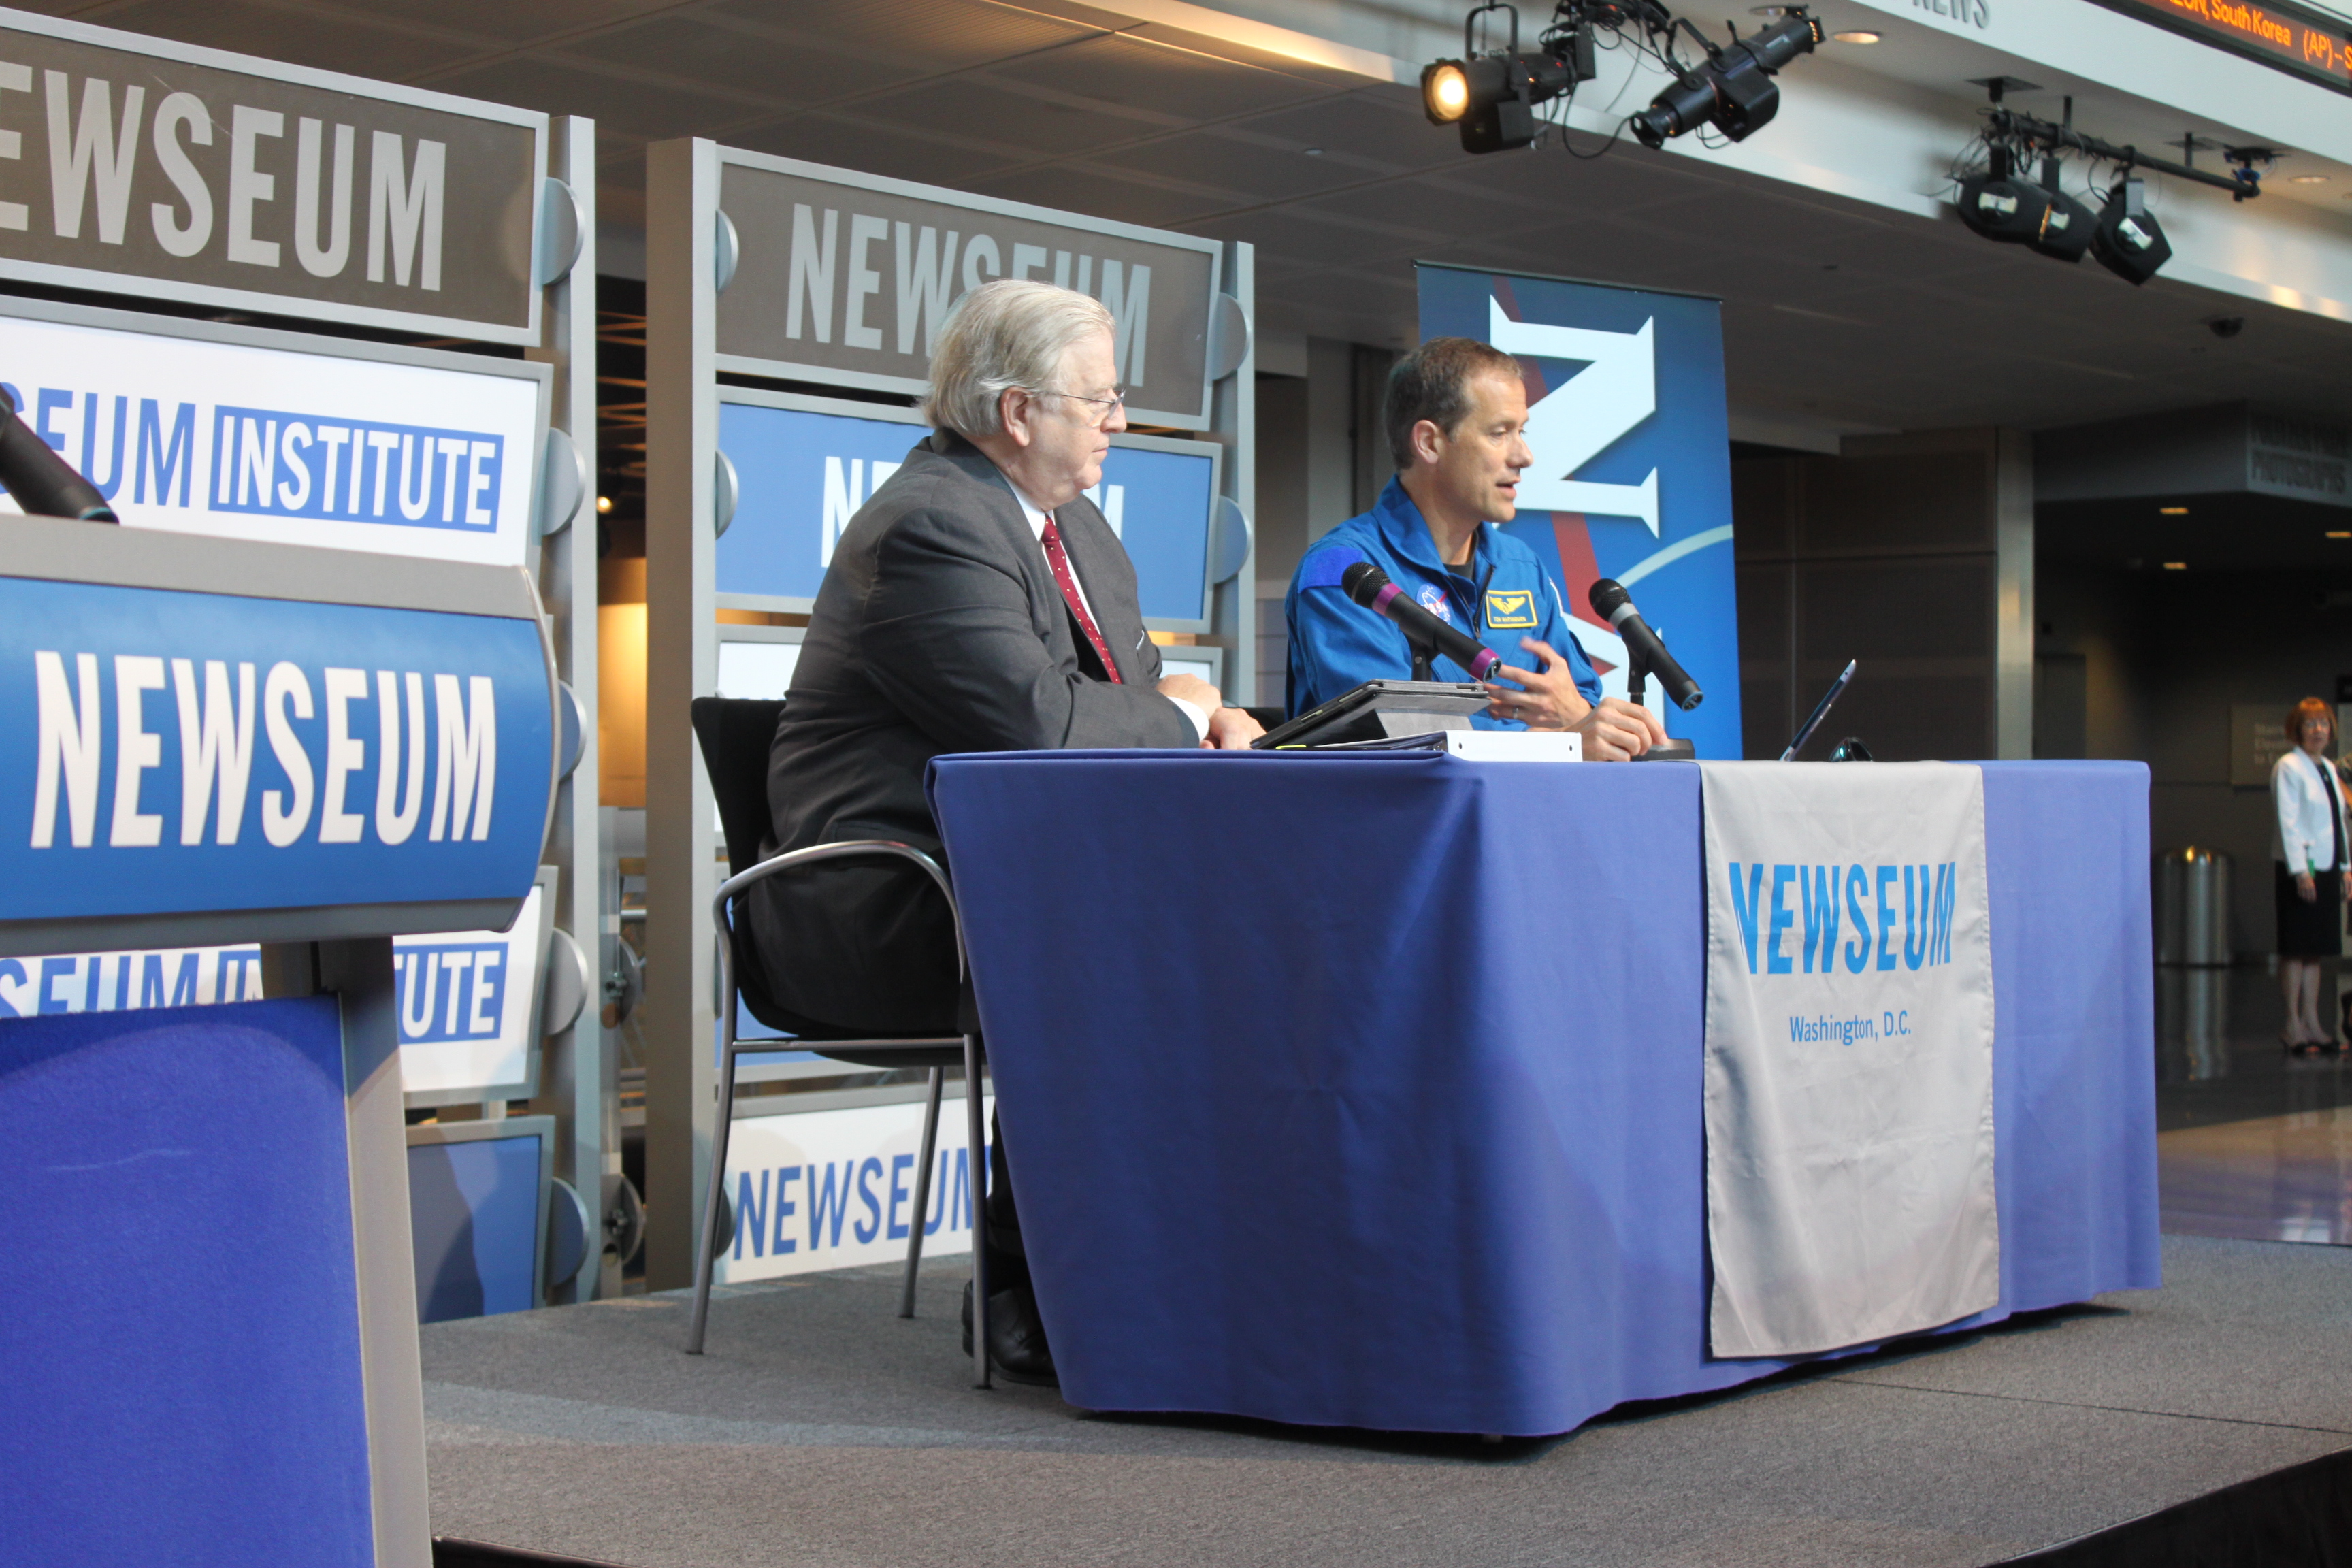 Mr. Gene Policinski (left), the Chief Operating Officer of the Newseum, directed Free Spirits in a televised Q&A with NASA astronaut Dr. Thomas Marshburn.